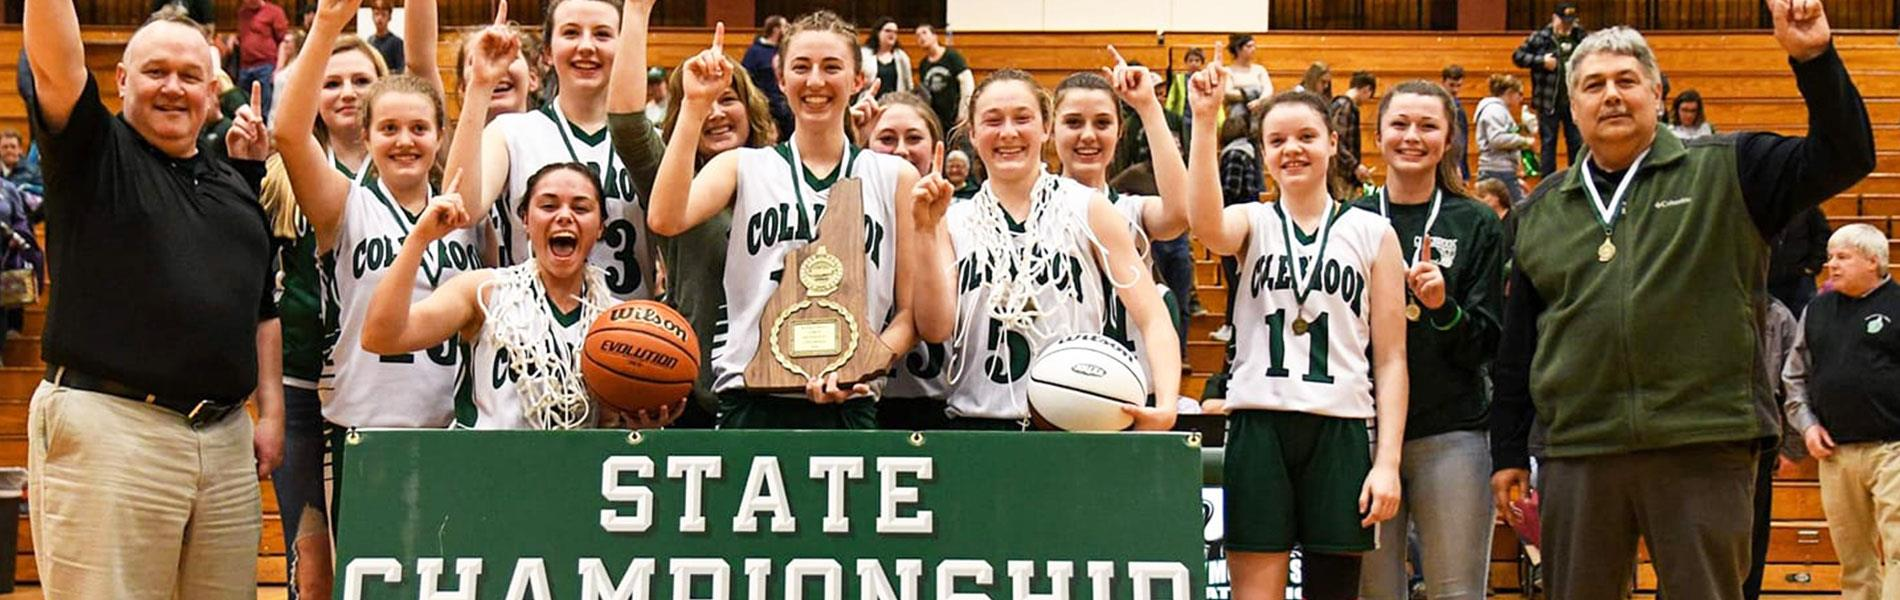 Colebrook wins state champ